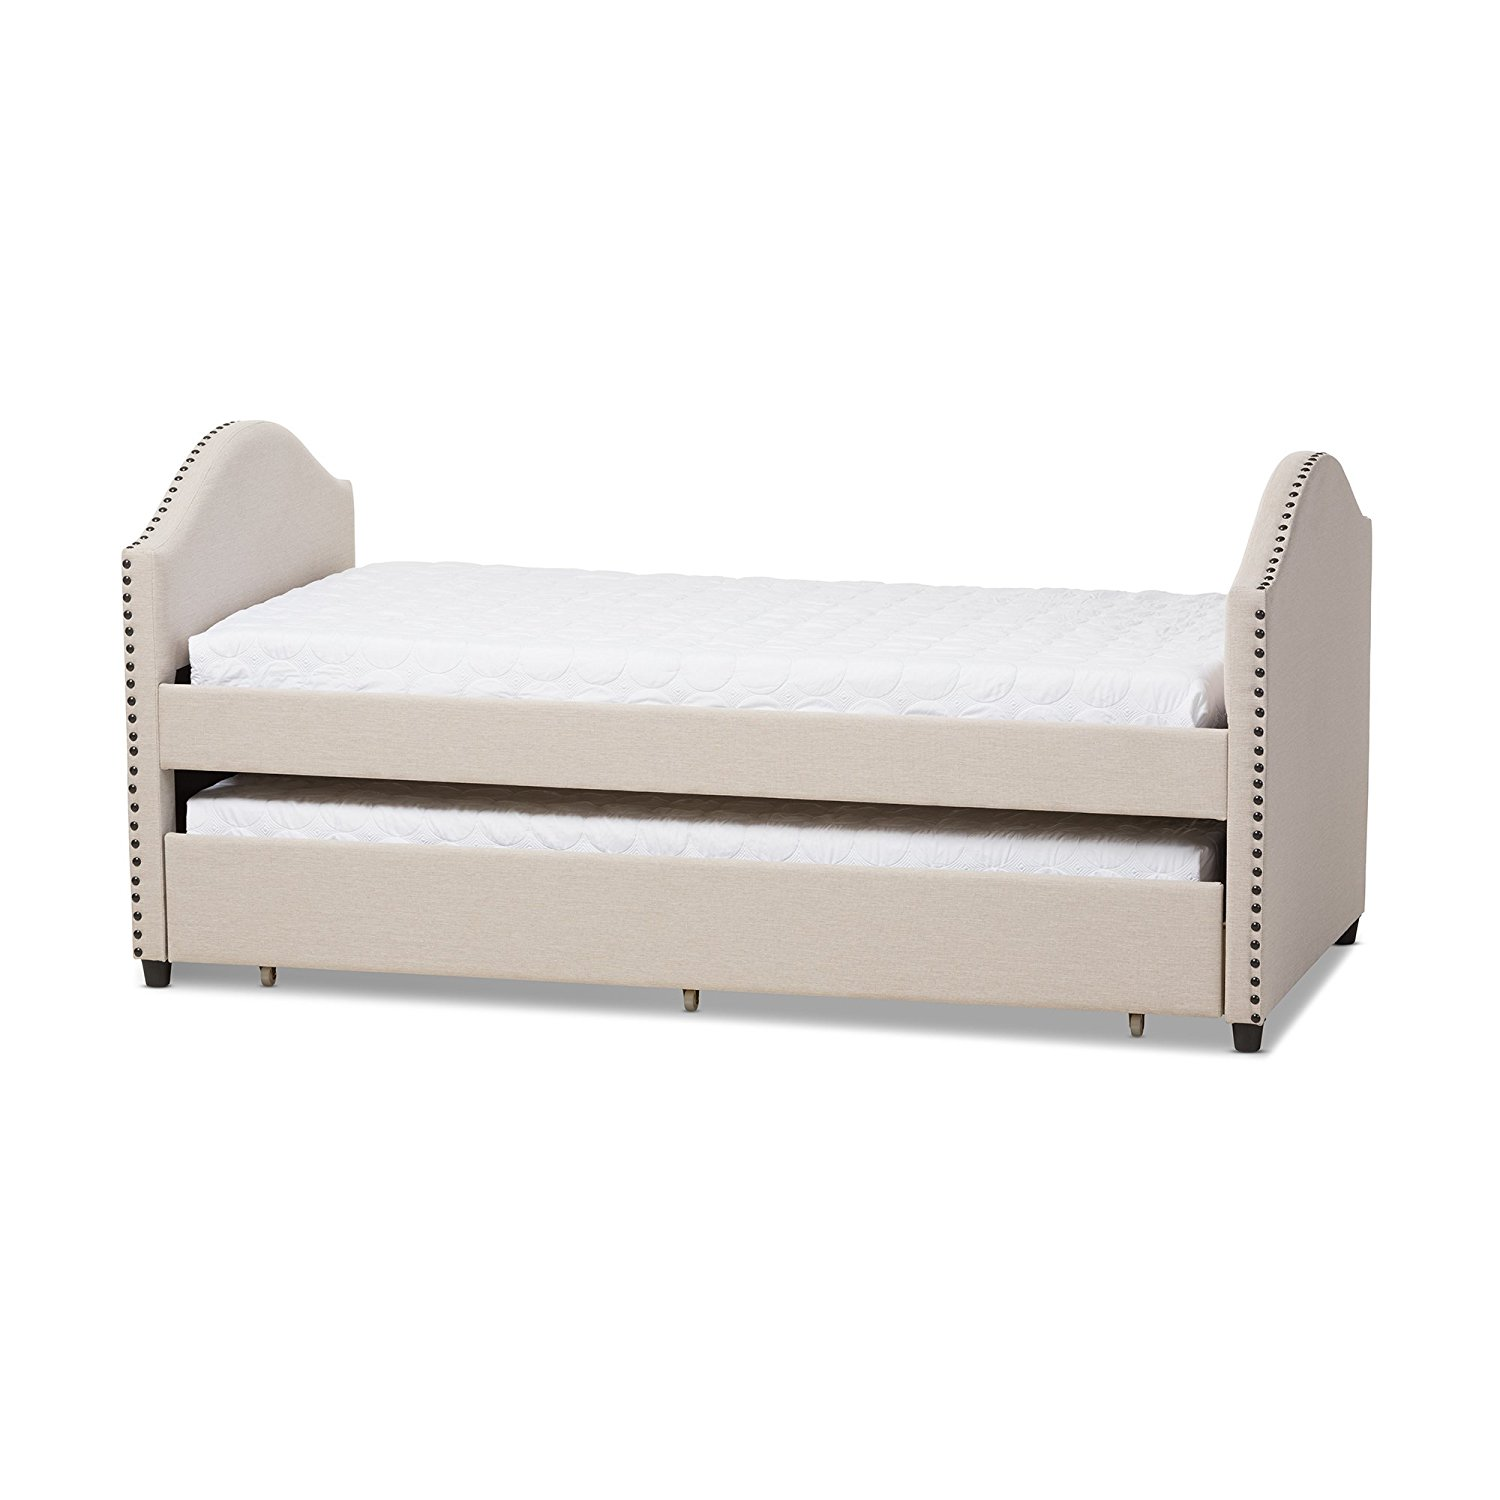 Baxton Studio Alair Fabric Upholstered Daybed with Guest Trundle Bed, Twin, Beige